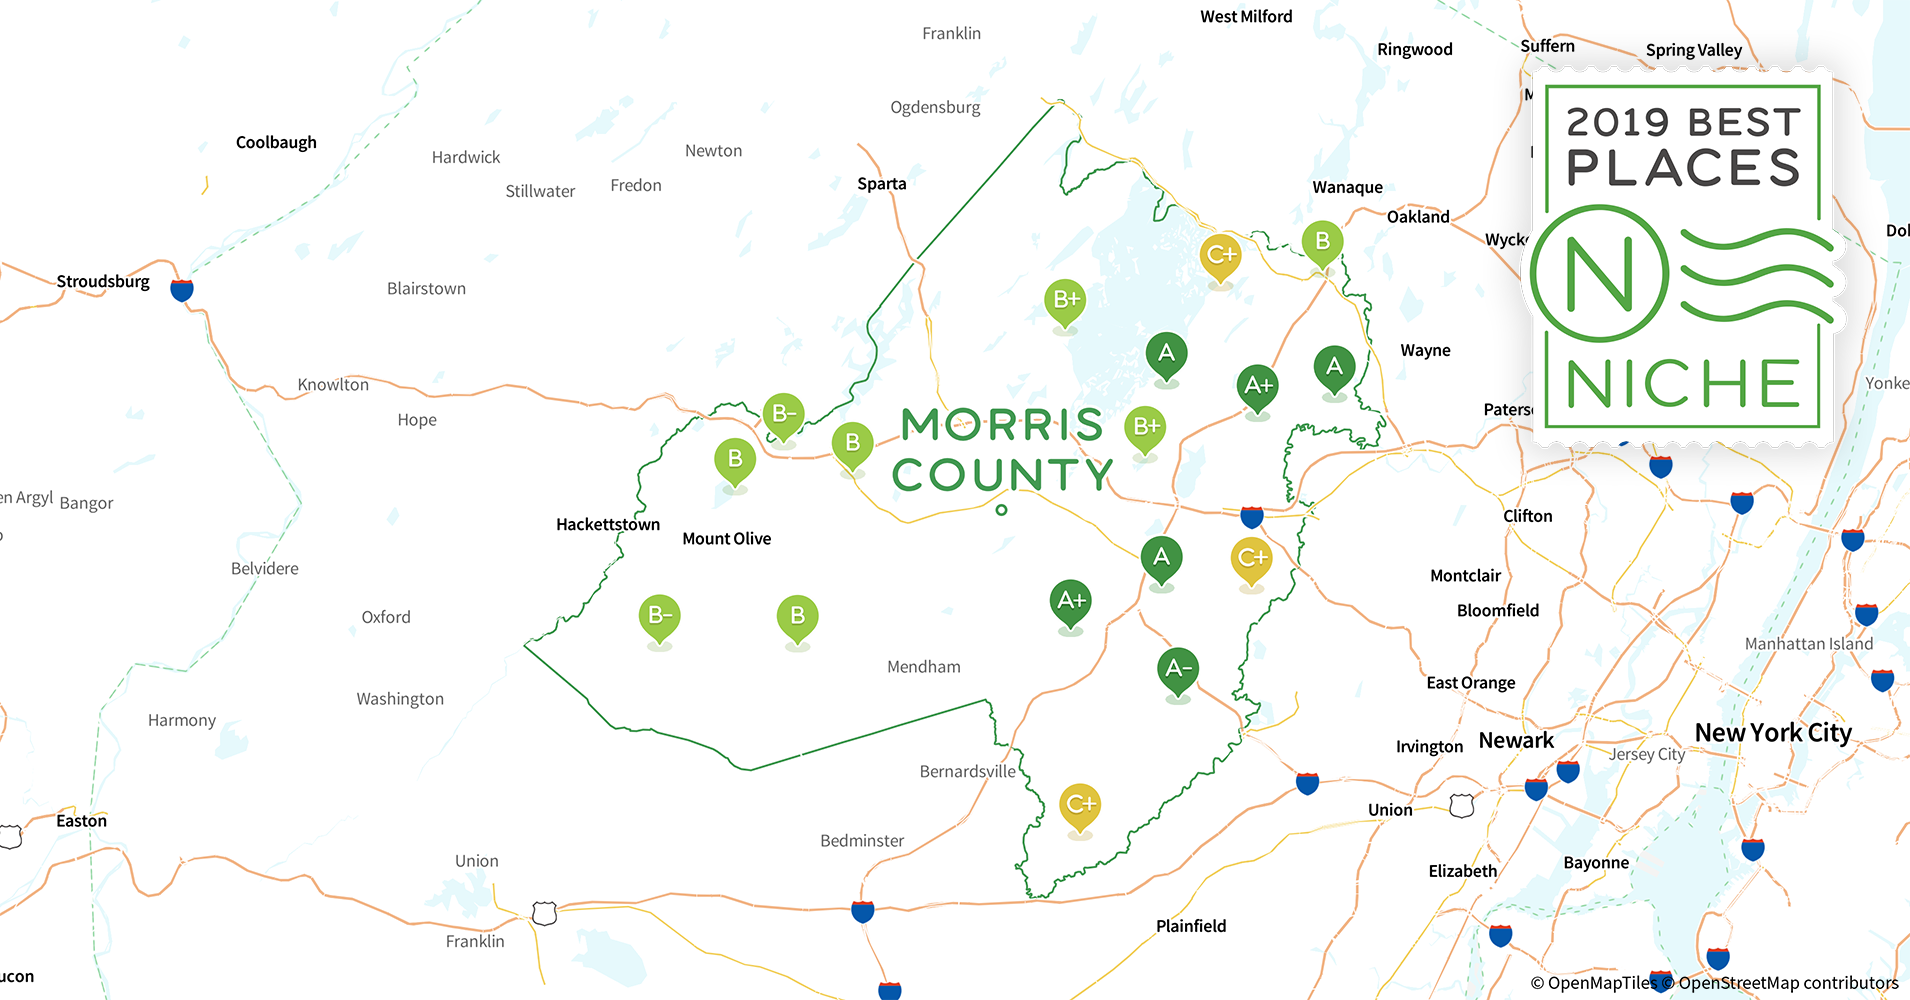 2019 Best Places to Live in Morris County, NJ - Niche